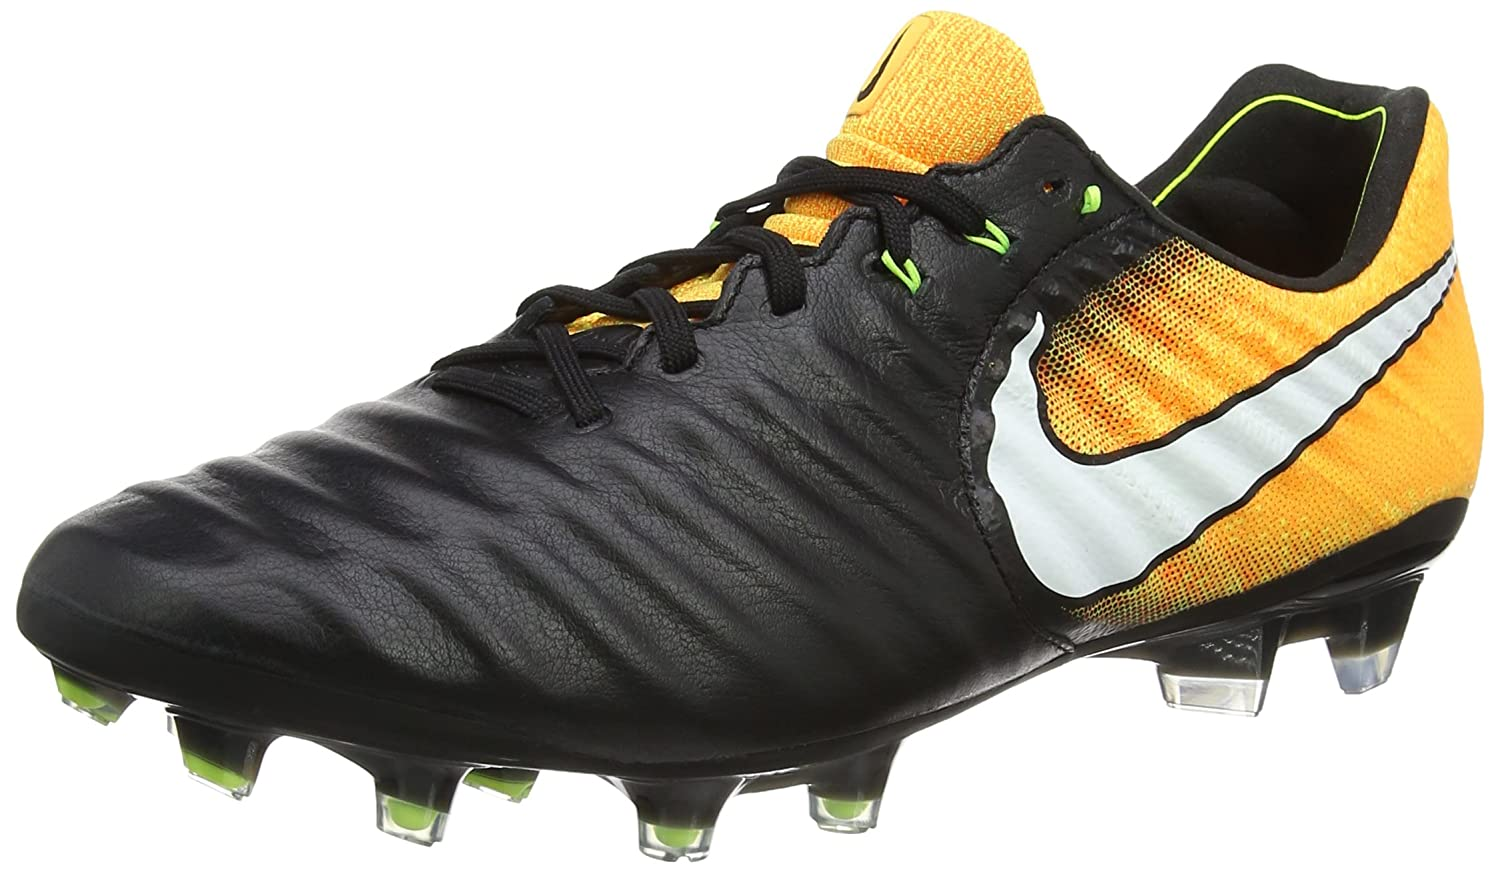 a874ba2f90f Nike Men s s Tiempo Legend VII Fg Football Boots  Amazon.co.uk  Shoes   Bags